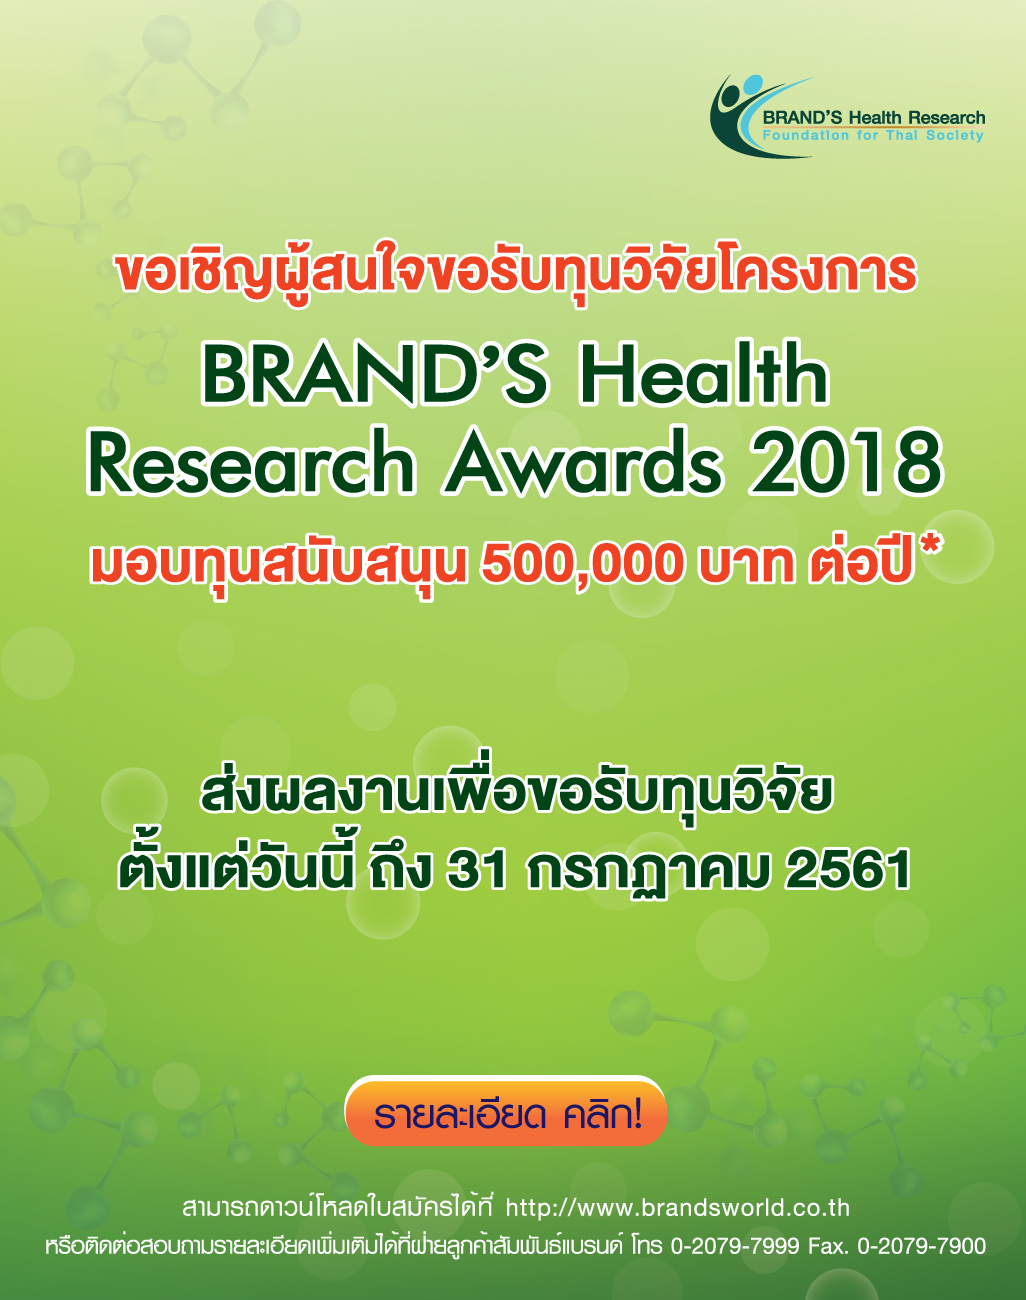 BRAND'S Health Research Awards 2018